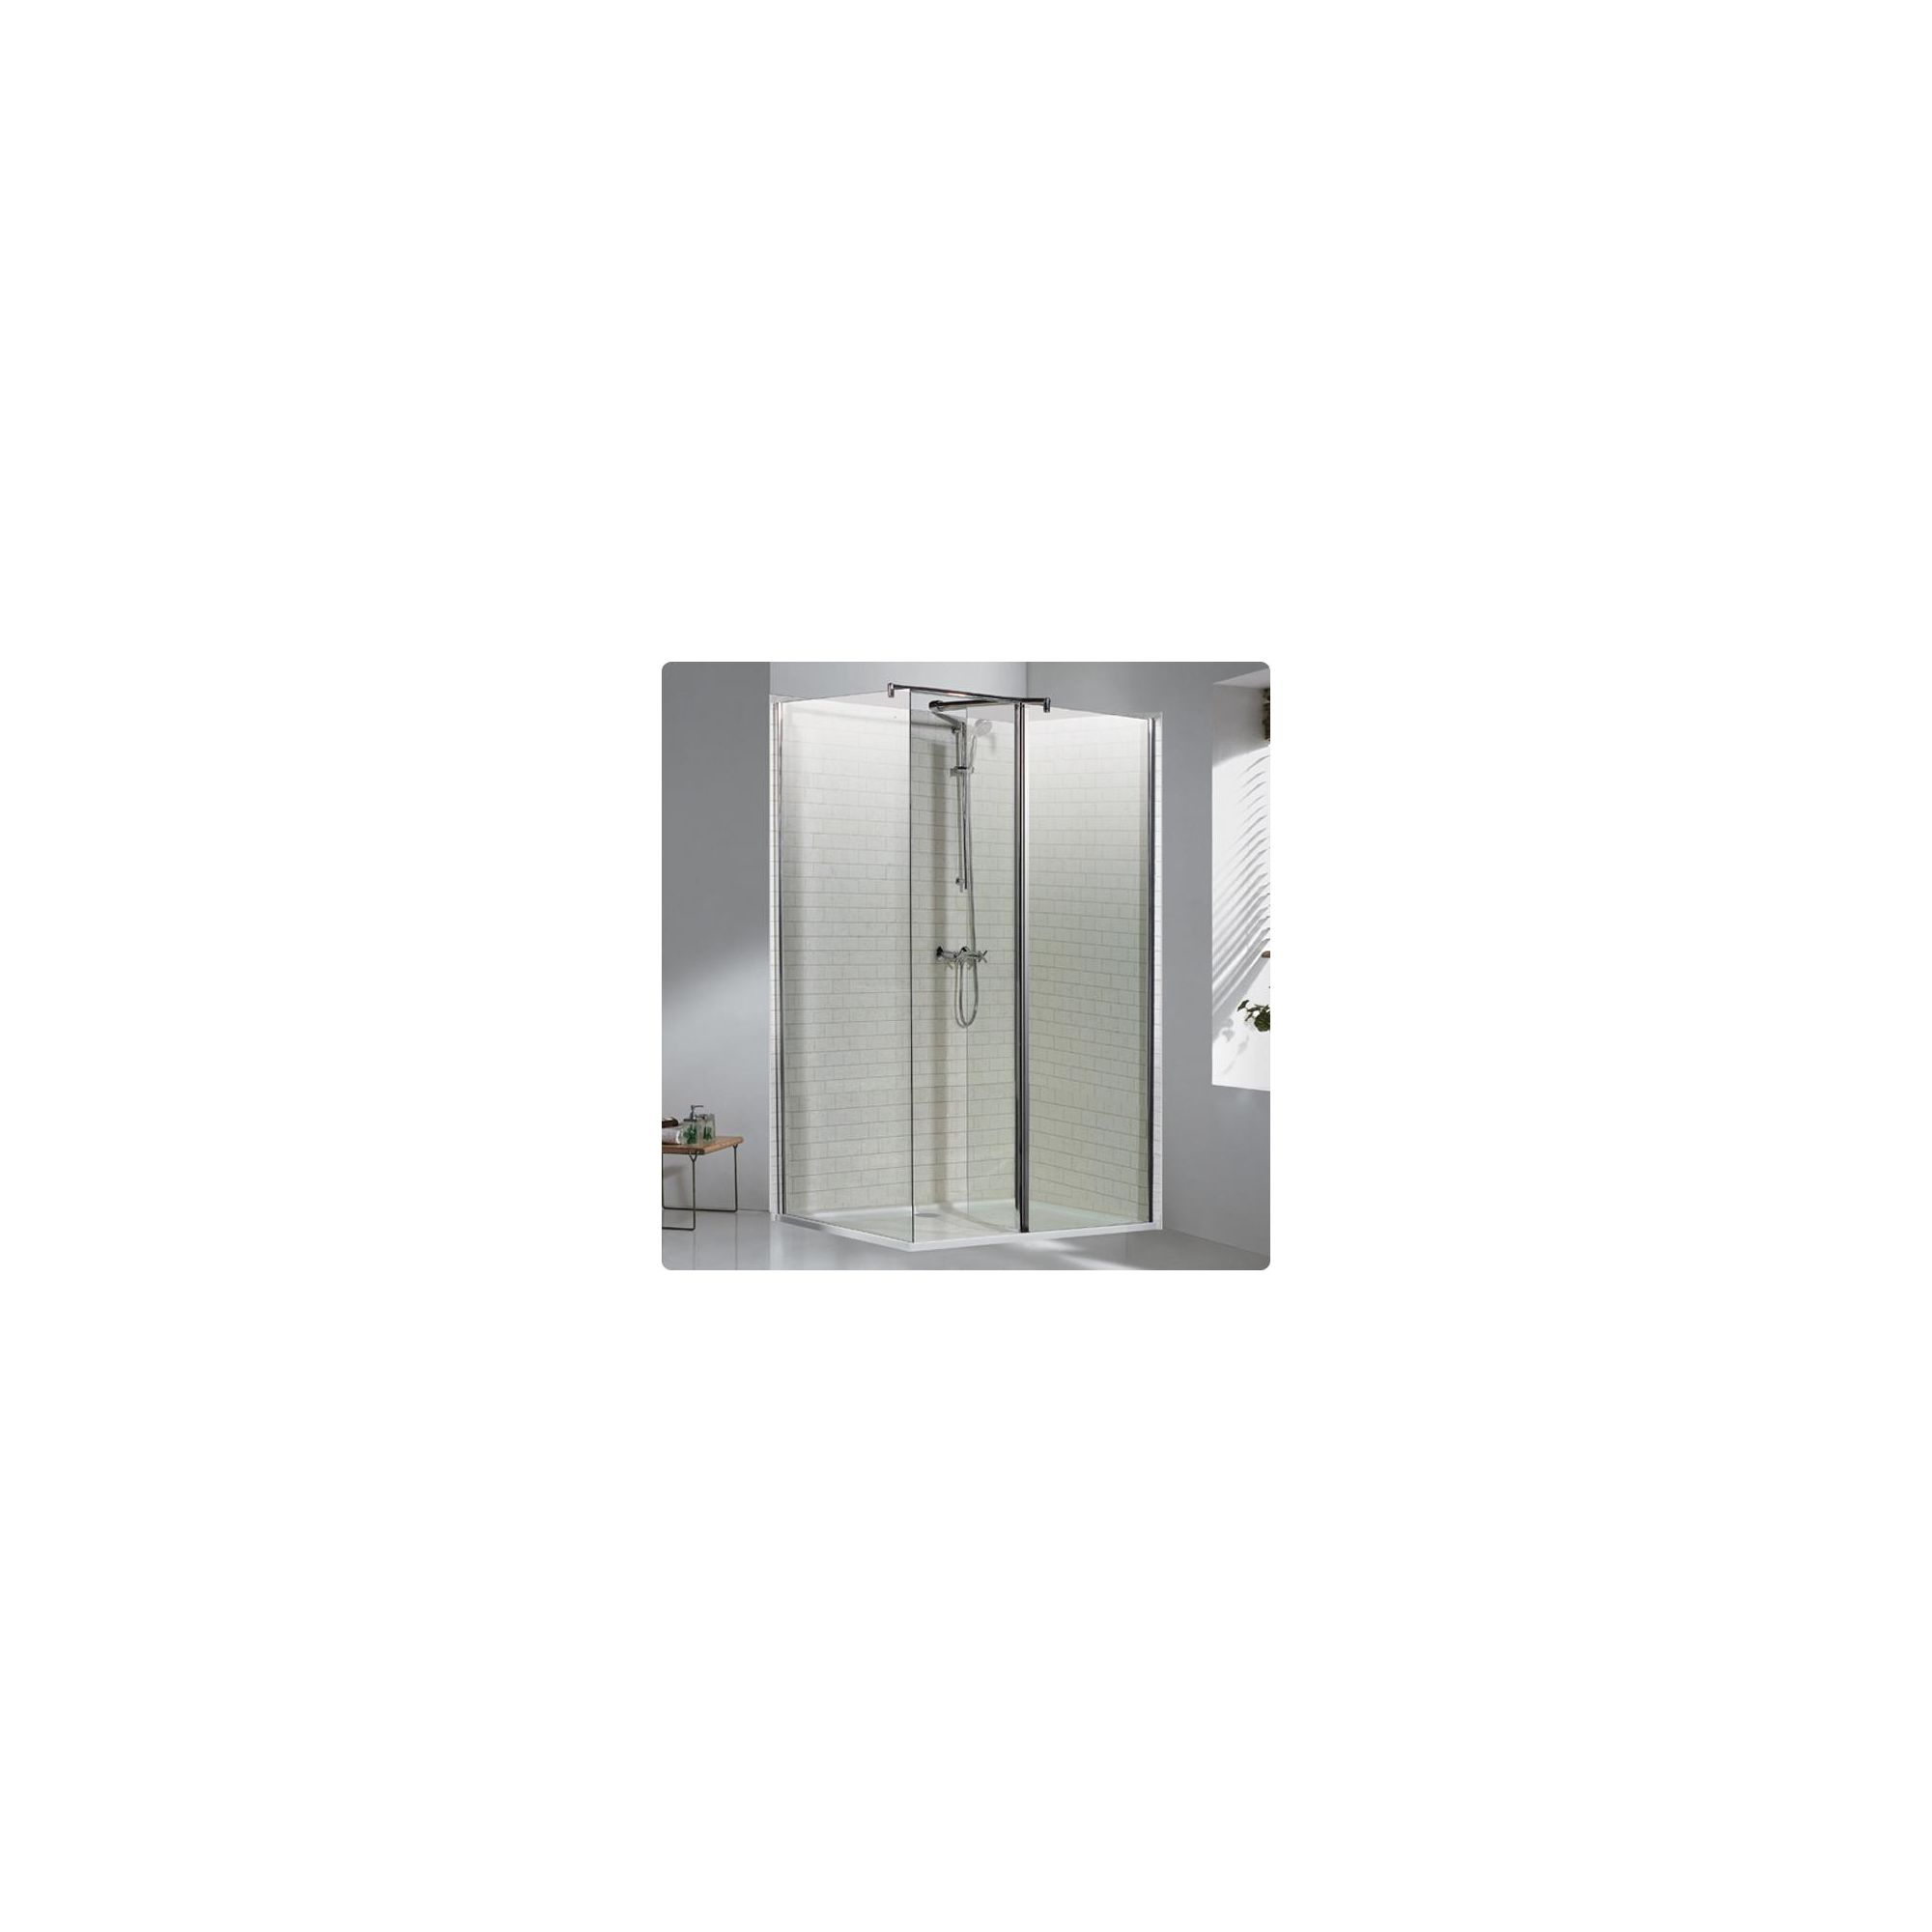 Duchy Choice Silver Walk-In Shower Enclosure 1200mm x 760mm (Complete with Tray), 6mm Glass at Tesco Direct